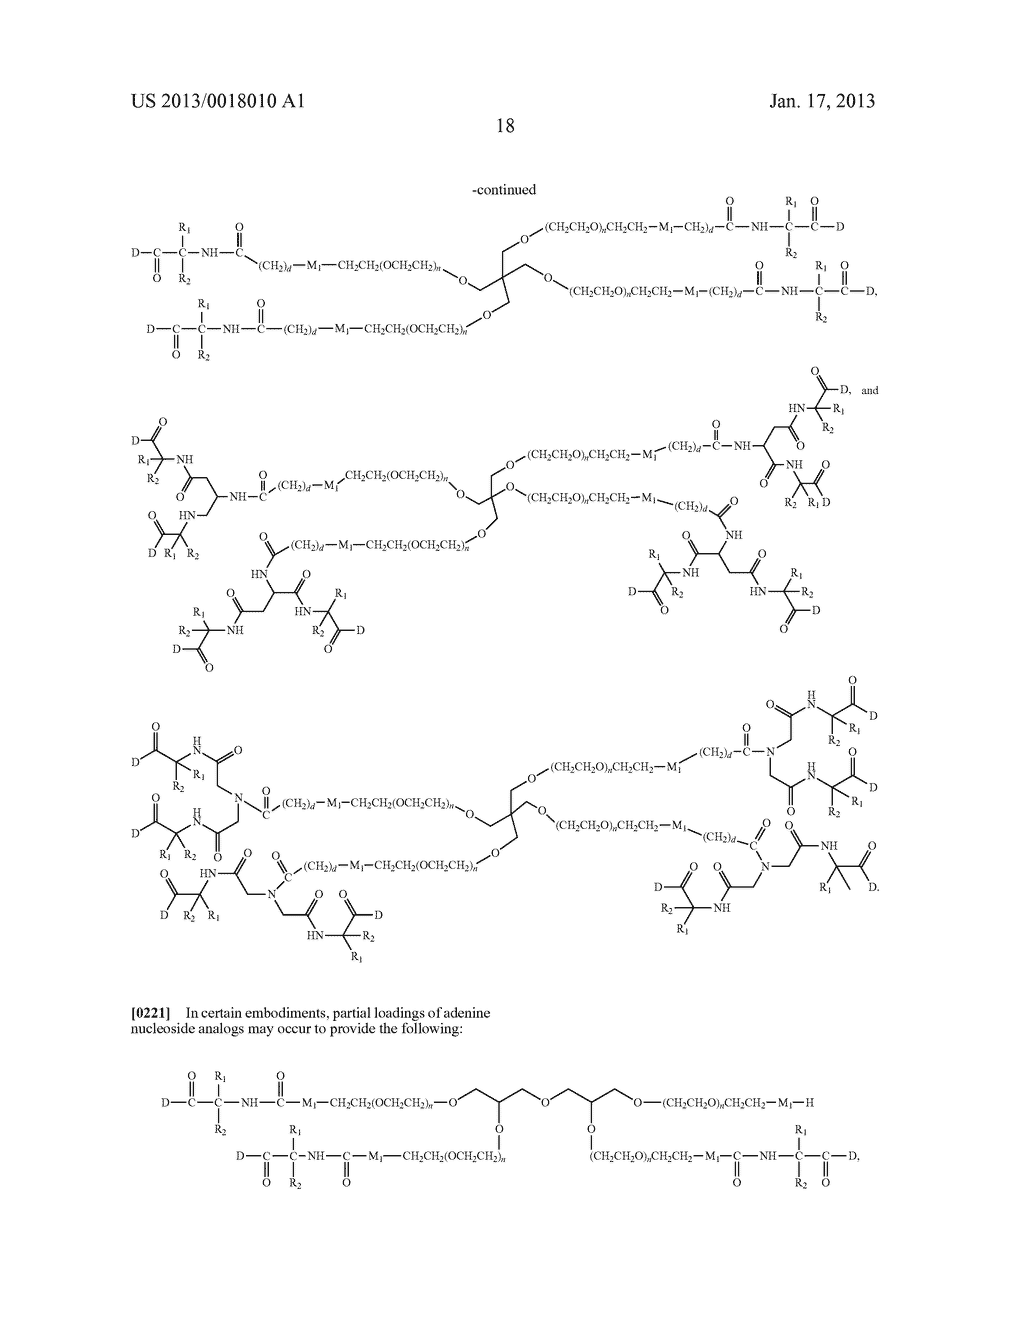 POLYMERIC CONJUGATES OF ADENINE NUCLEOSIDE ANALOGS - diagram, schematic, and image 37